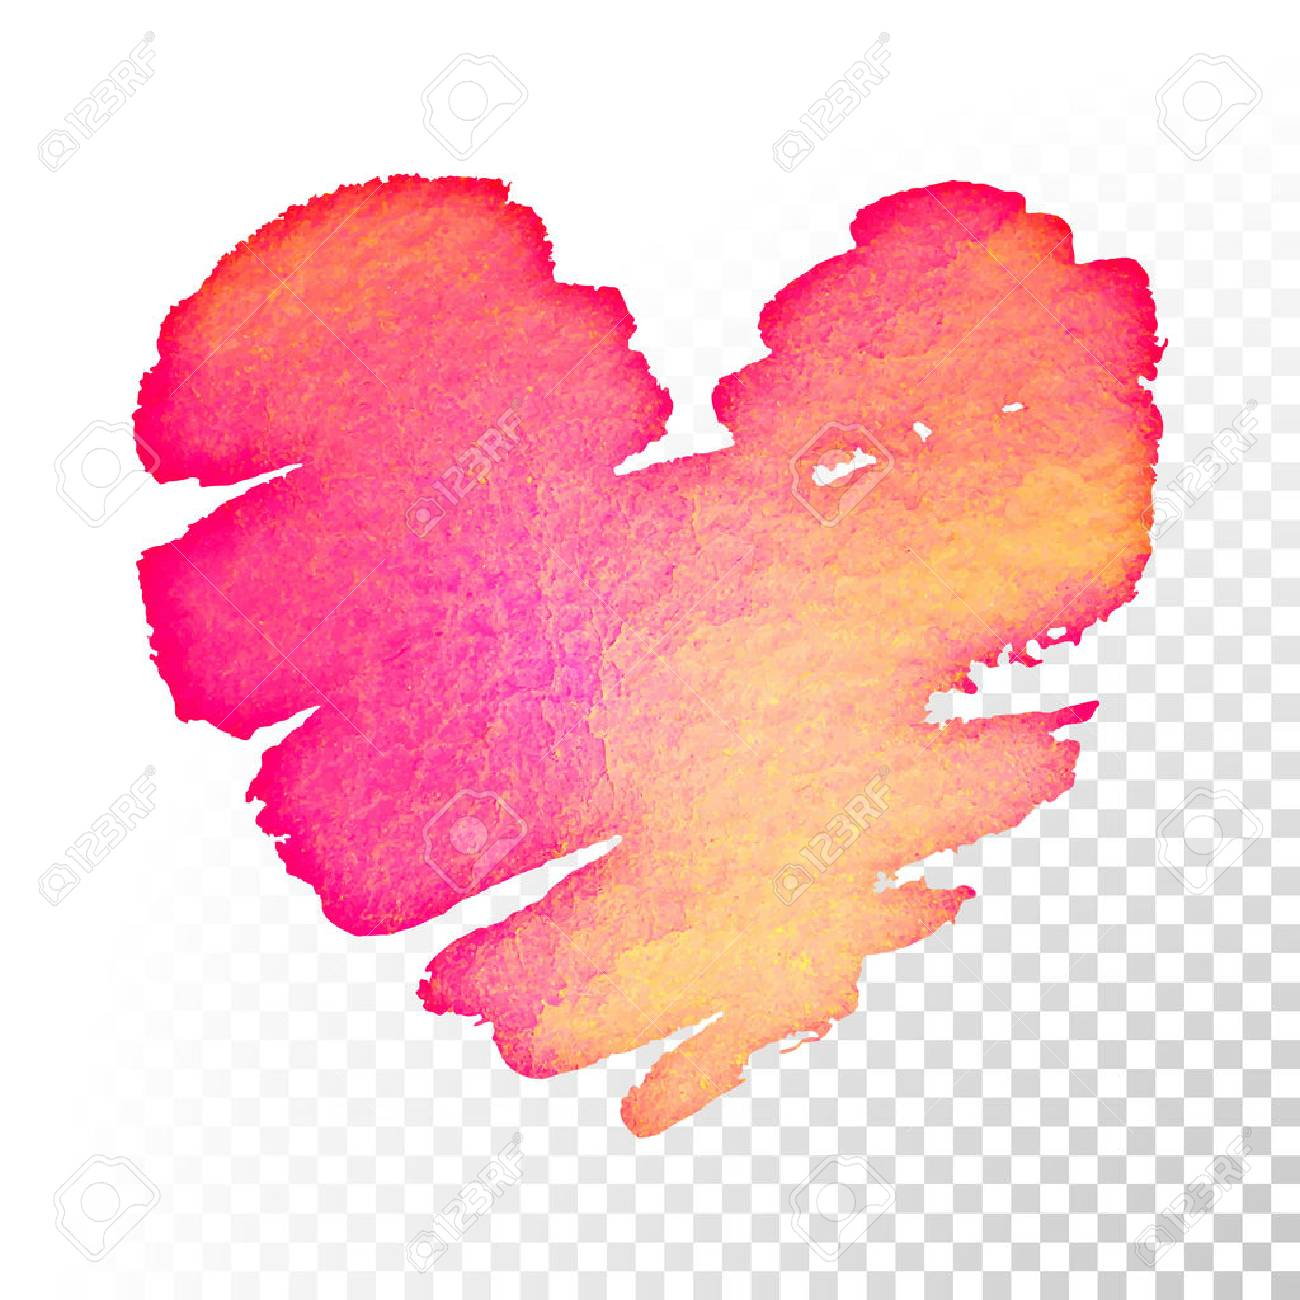 Valentines Day Pink And Red Watercolor Heart On Transparent